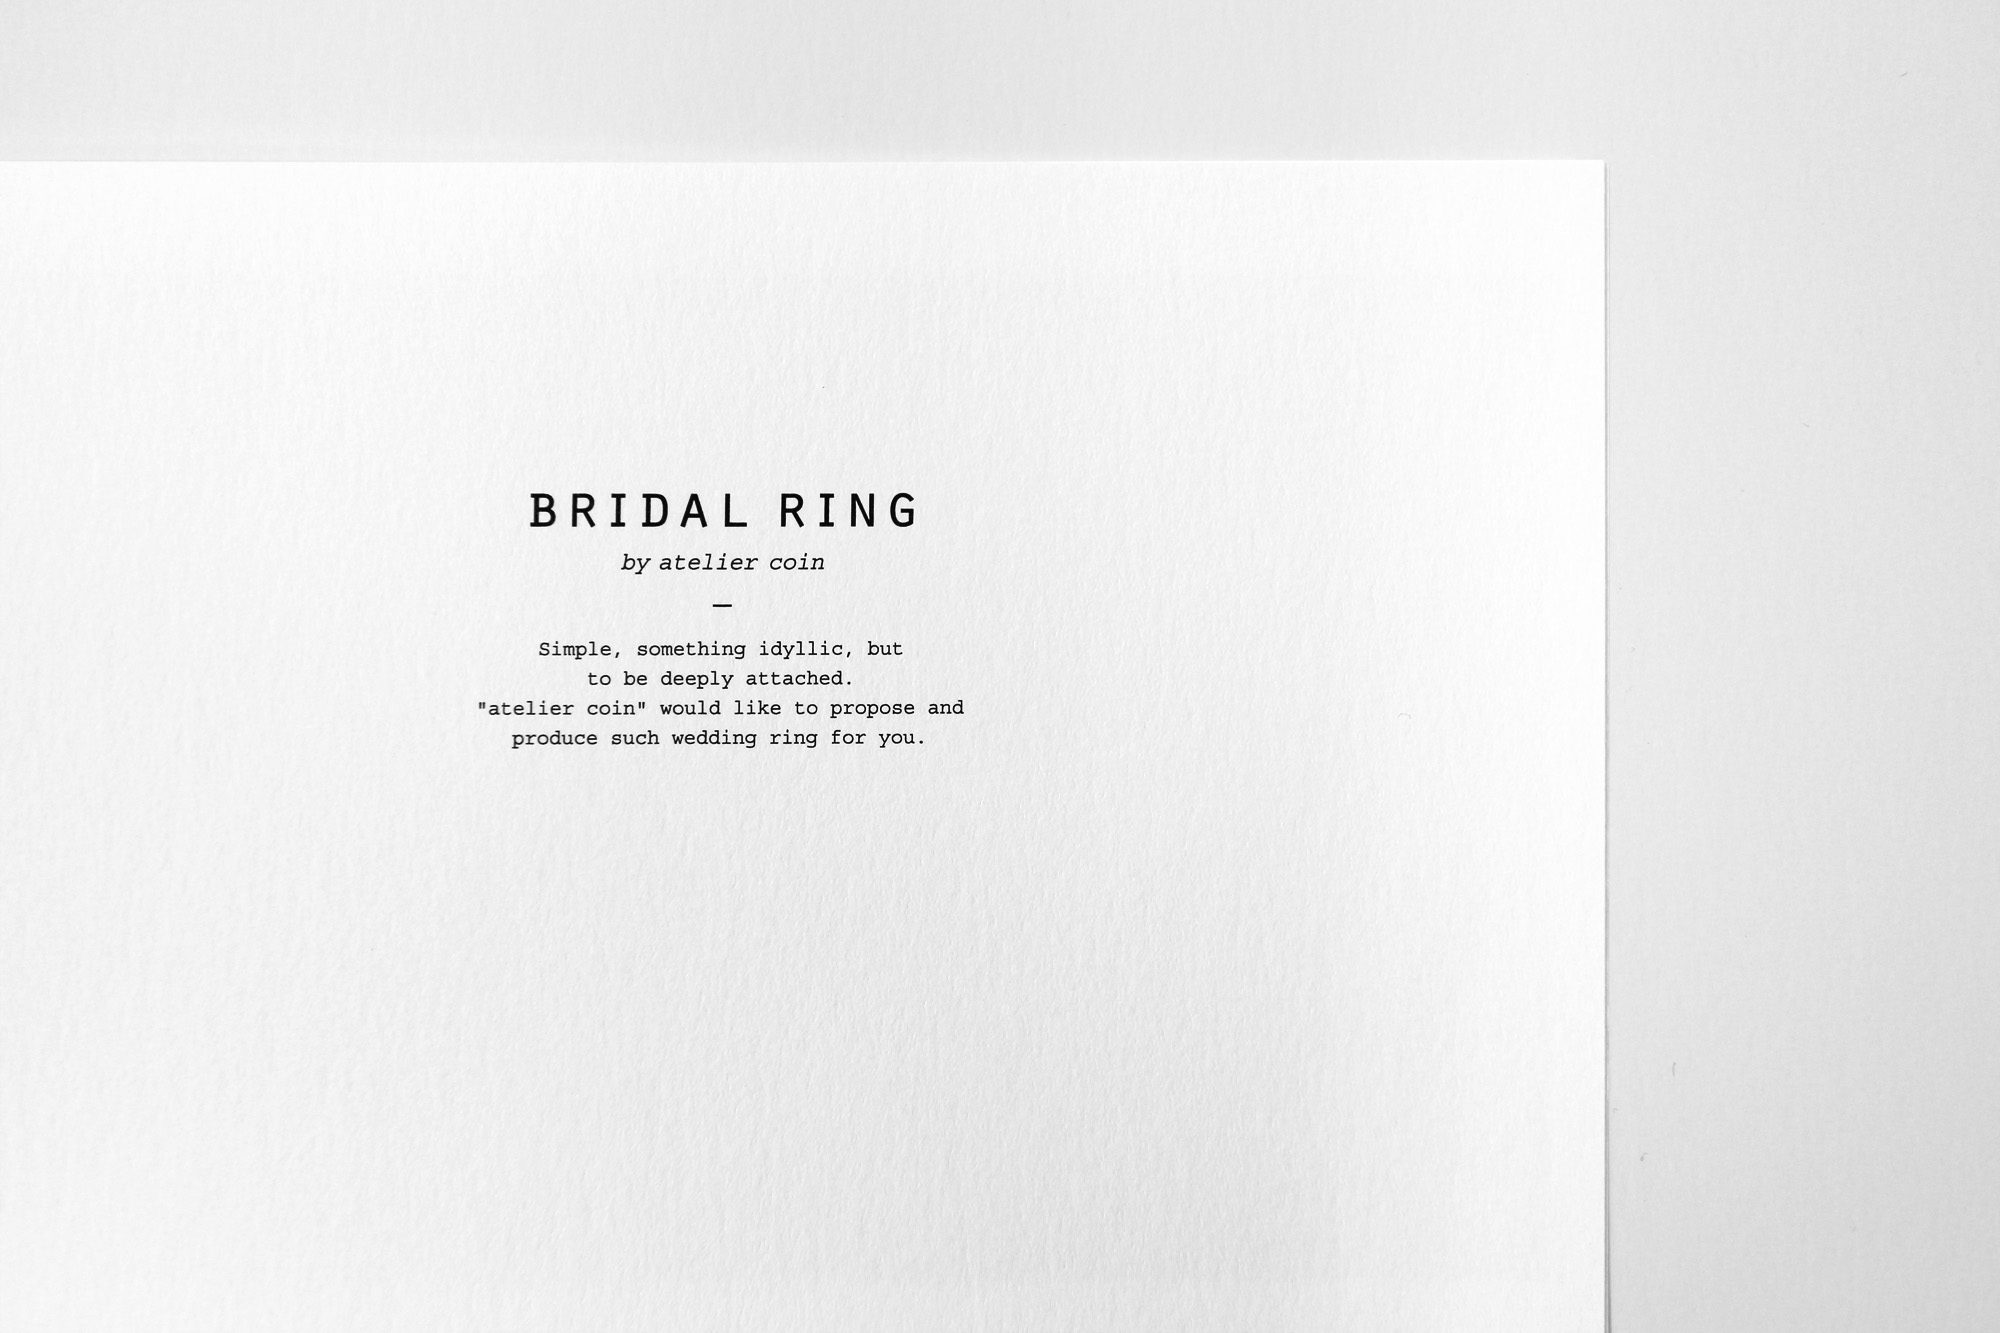 coin_bridal_ring_6